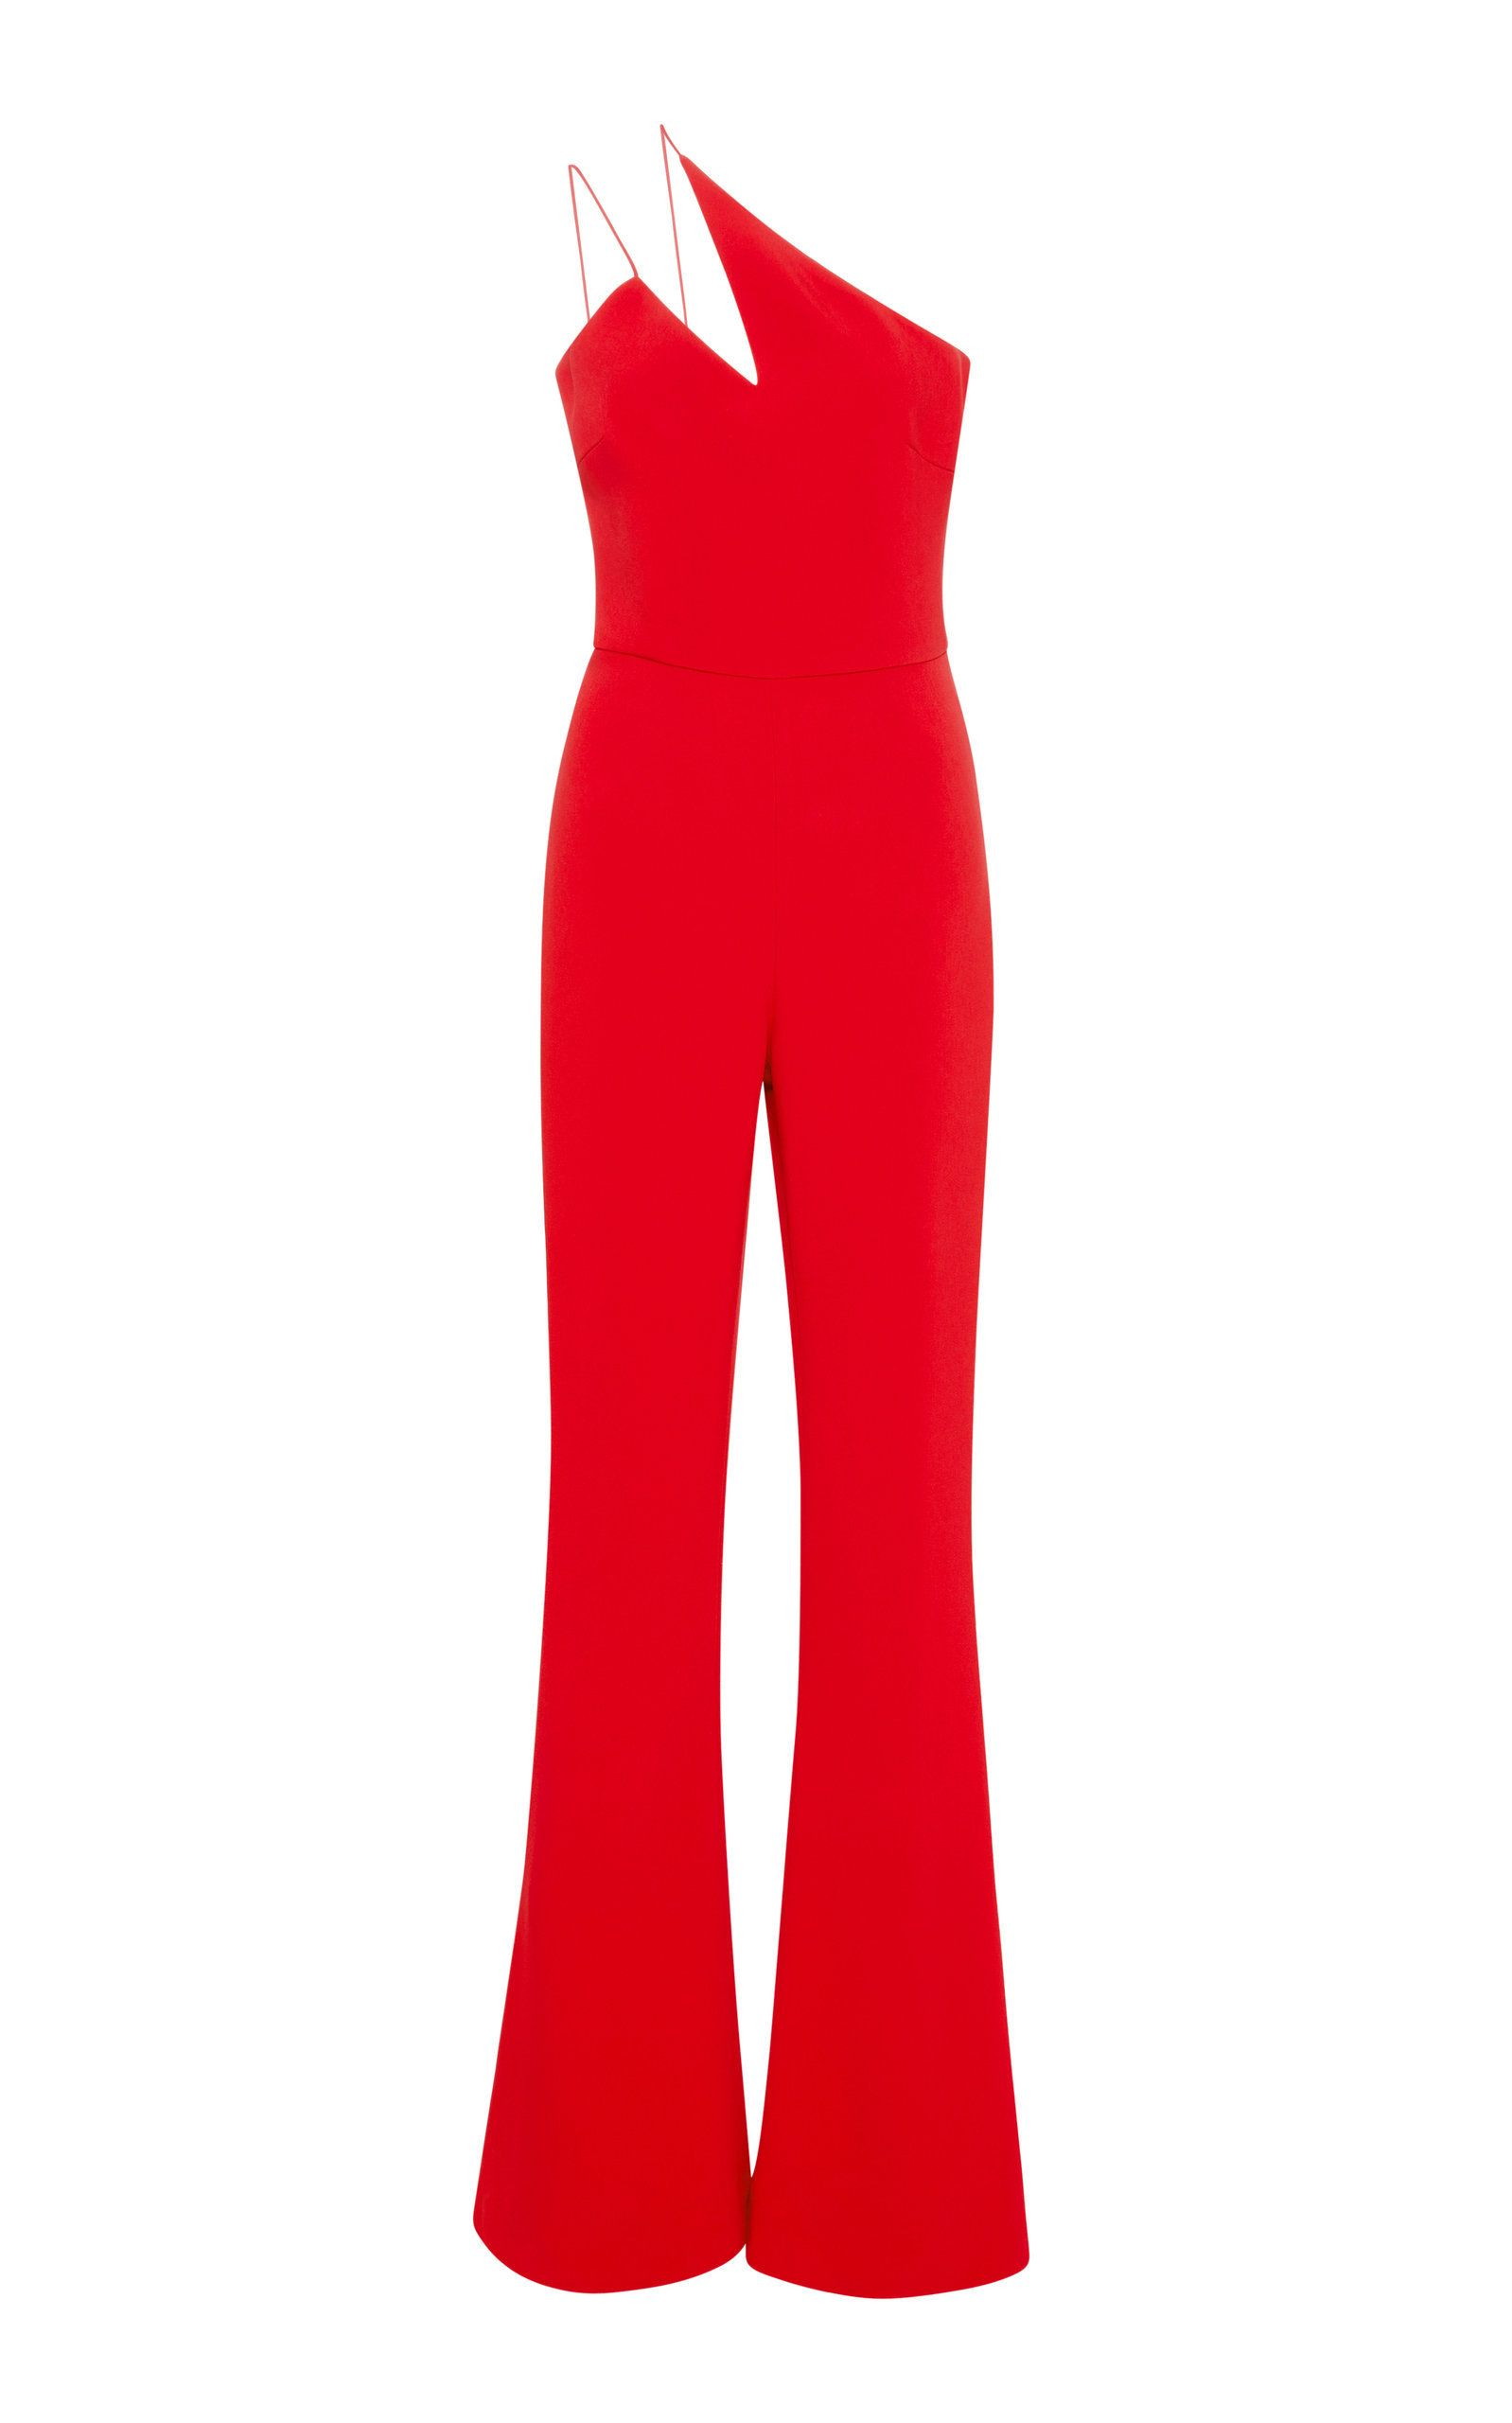 844173372bef Click product to zoom Cushnie Et Ochs